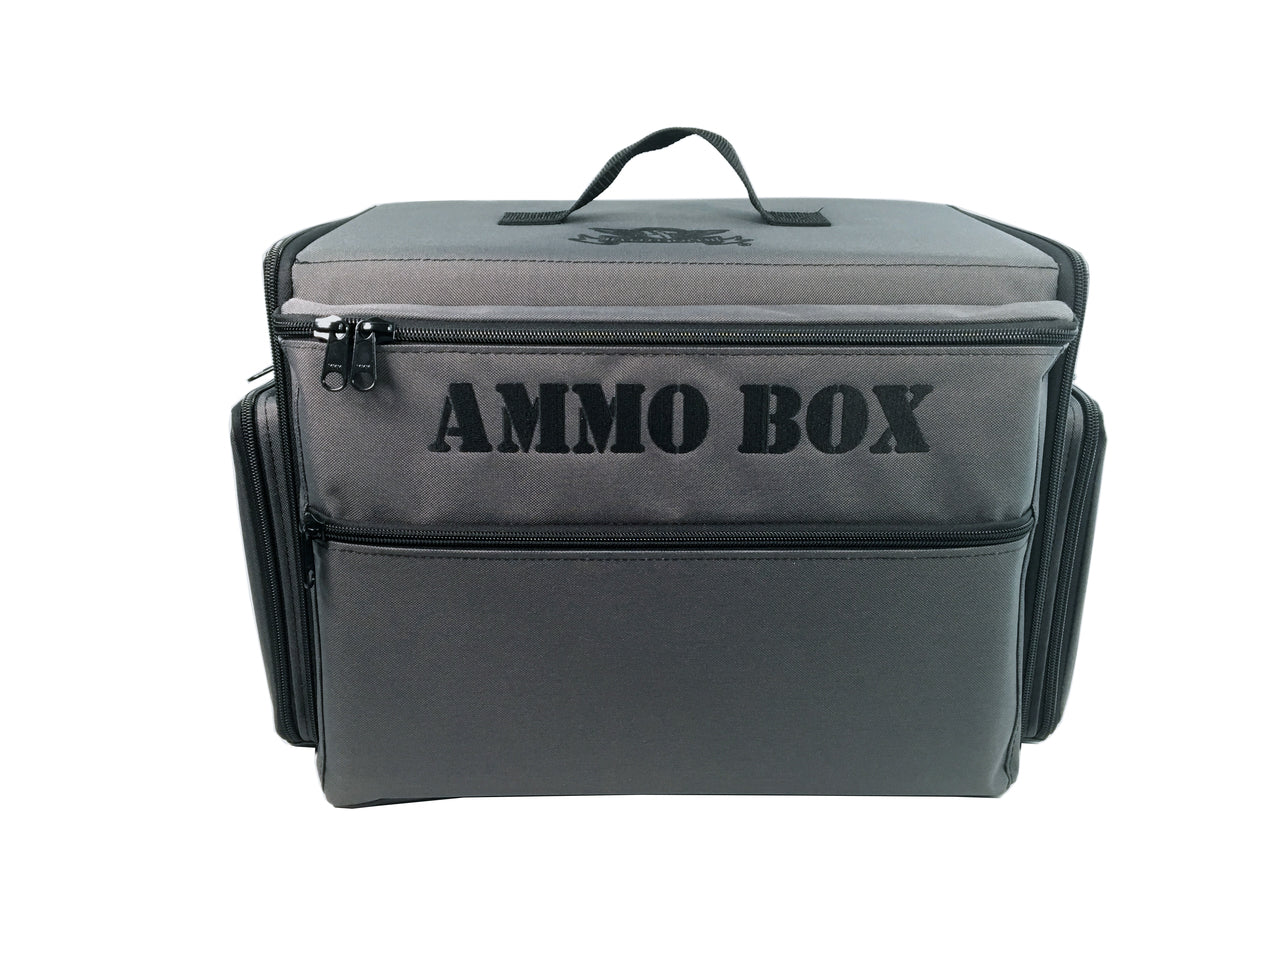 Ammo Box Bag Pluck Foam Load Out (Grey) | Mythicos